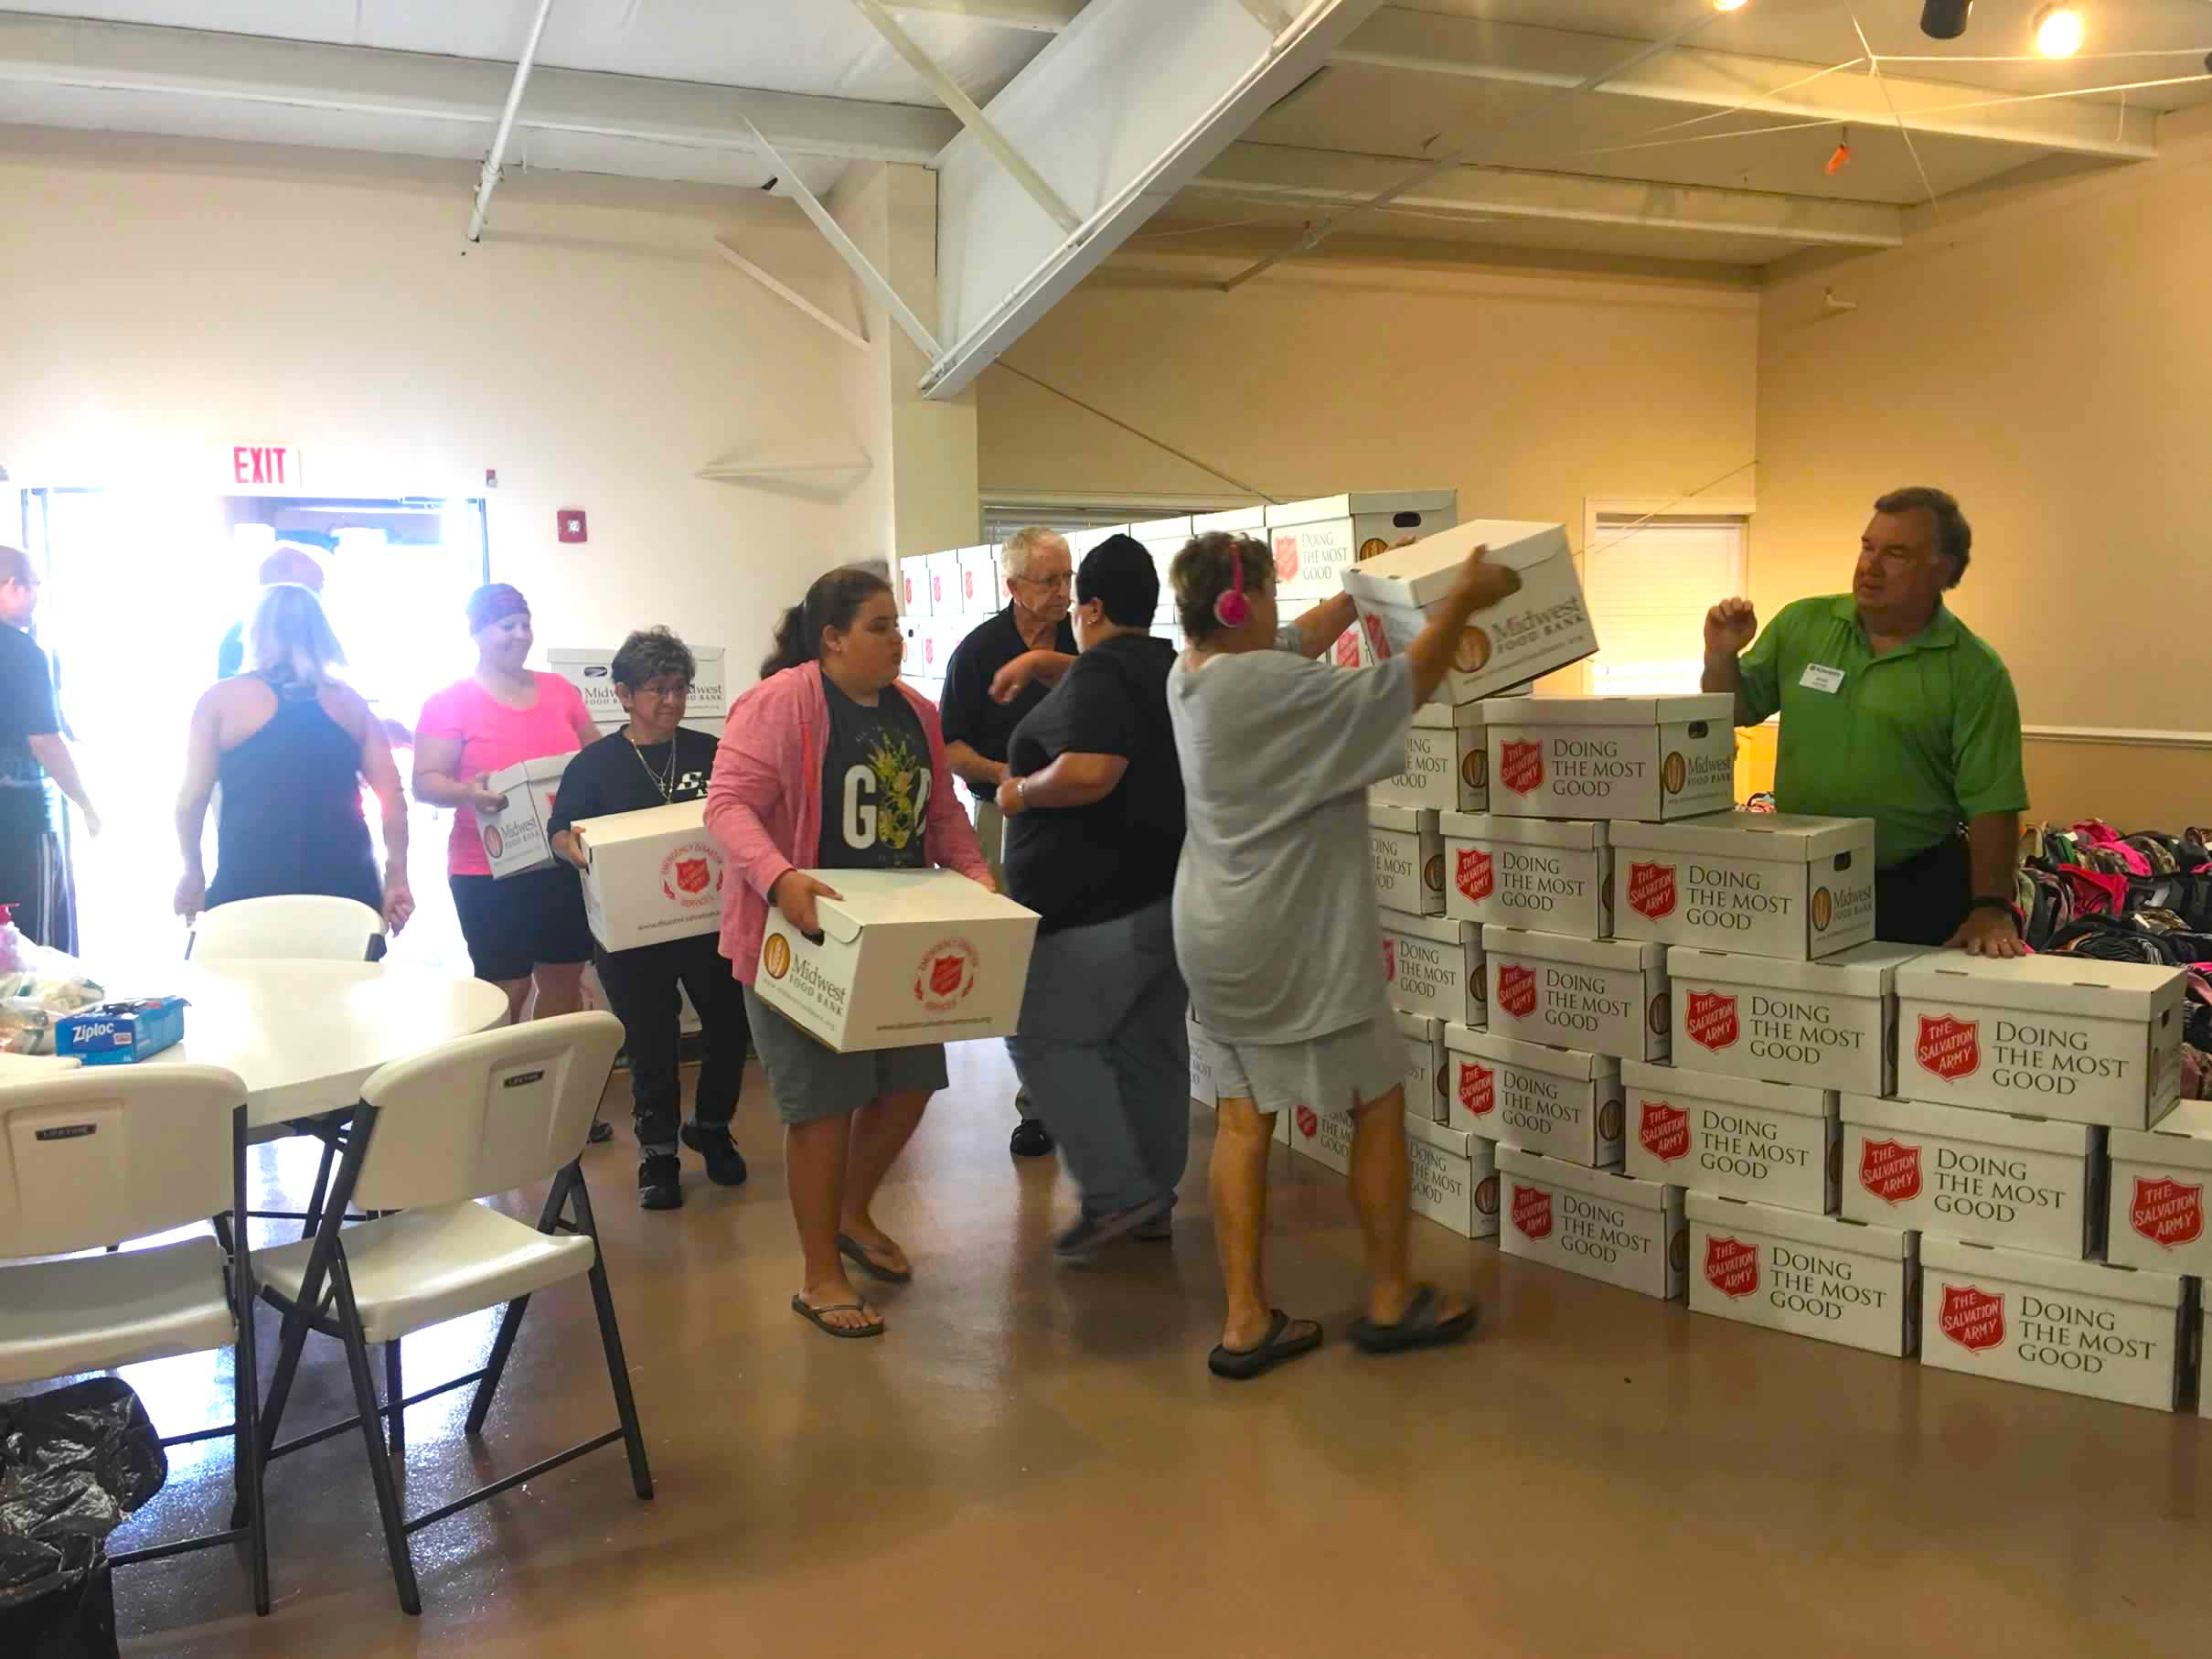 Volunteers create wall of food donations from the Salvation Army, one of the Kiwanis partners.